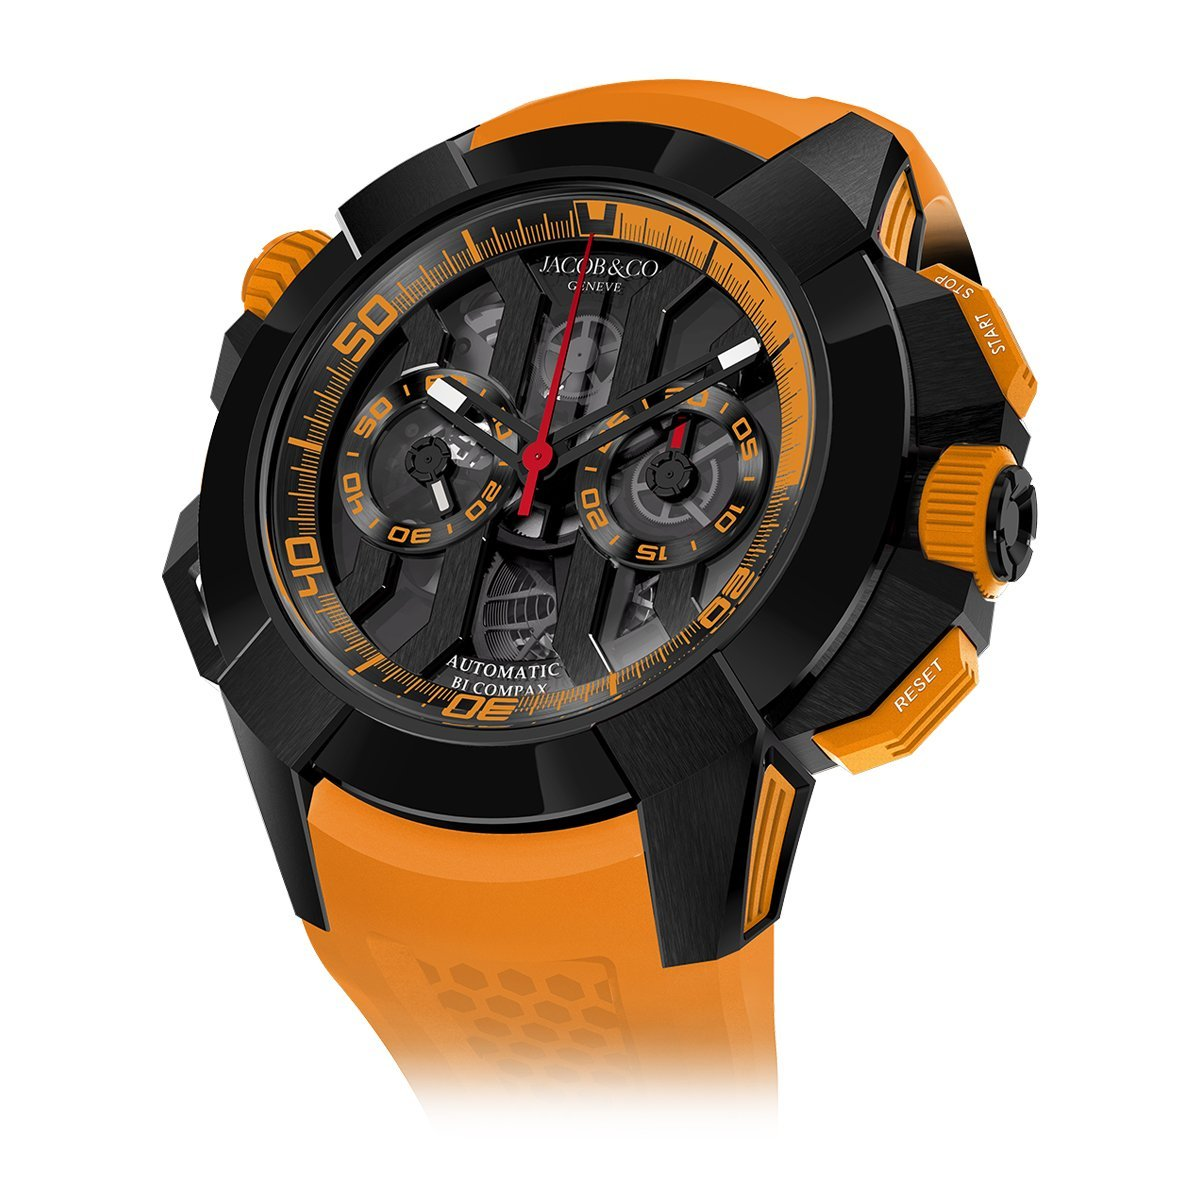 Jacob & Co. Epic X Chronograph Orange - Watches & Crystals